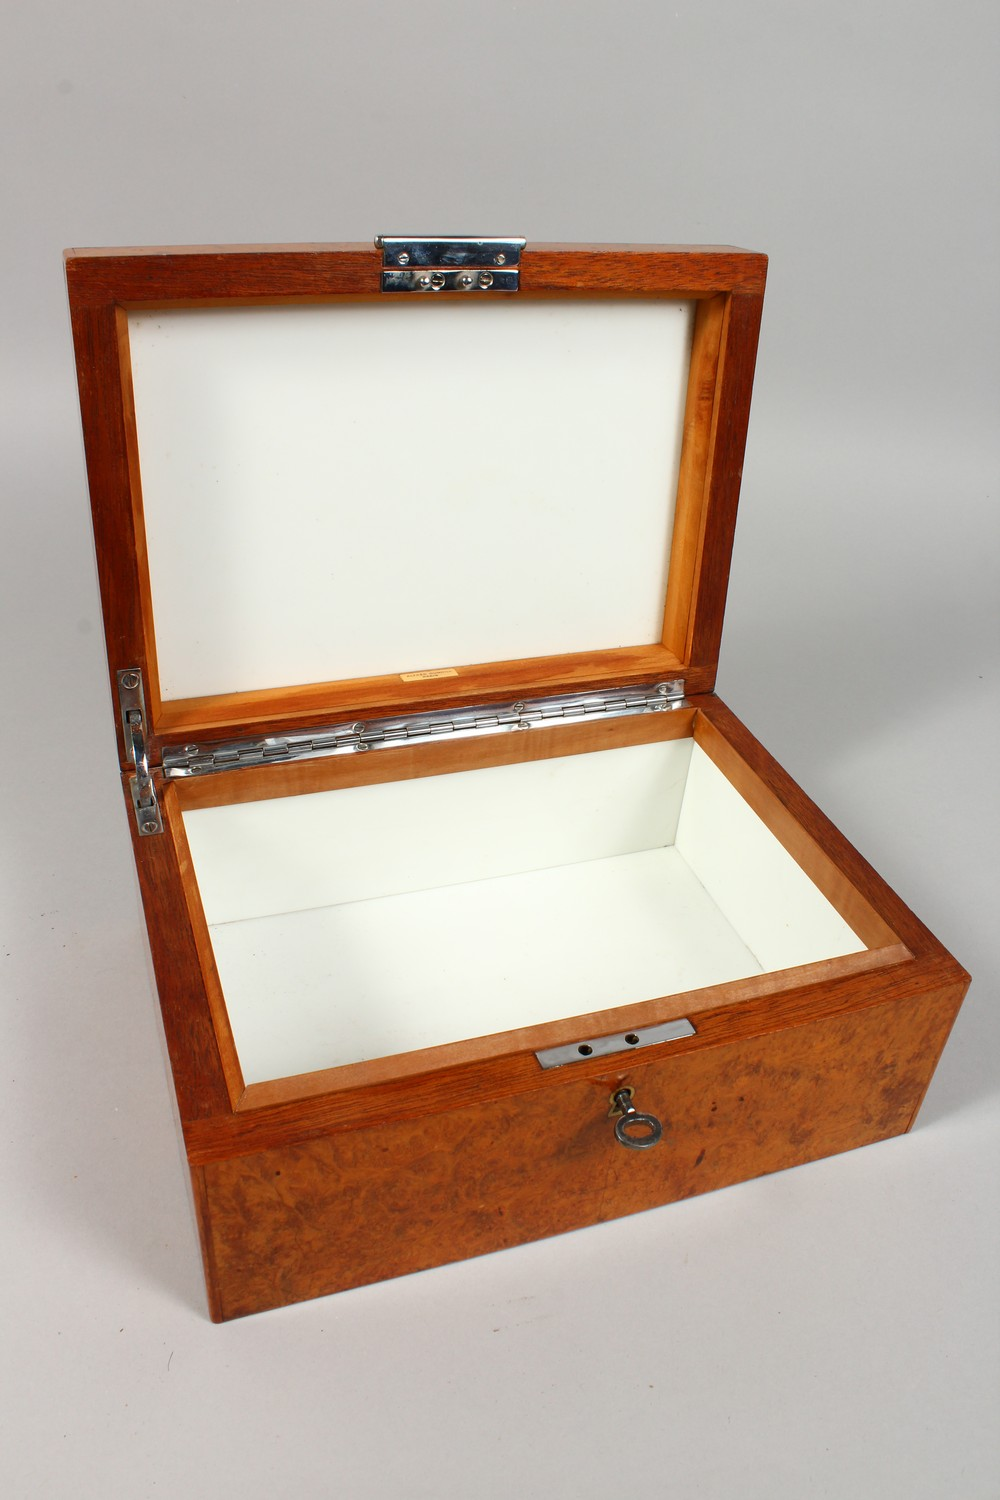 ALFRED DUNHILL, A GOOD BURR WOOD HUMIDOR. 10.25ins wide. - Image 3 of 3